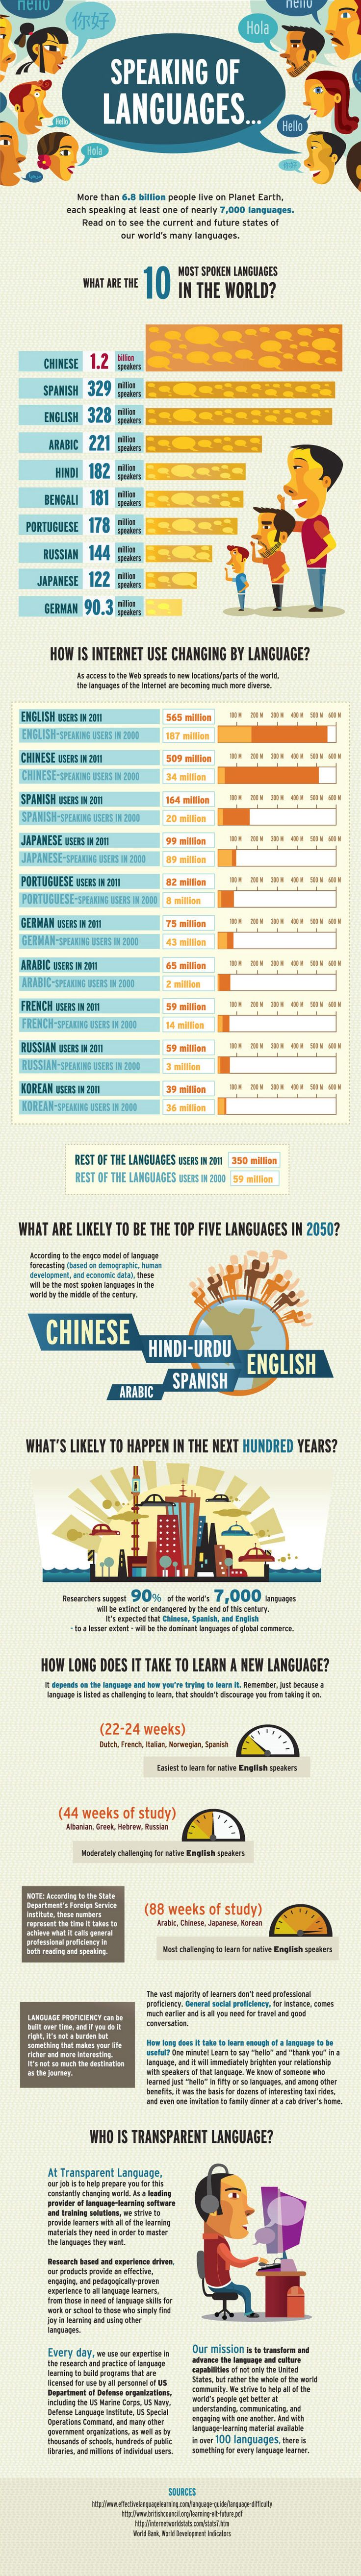 The world's most spoken languages.